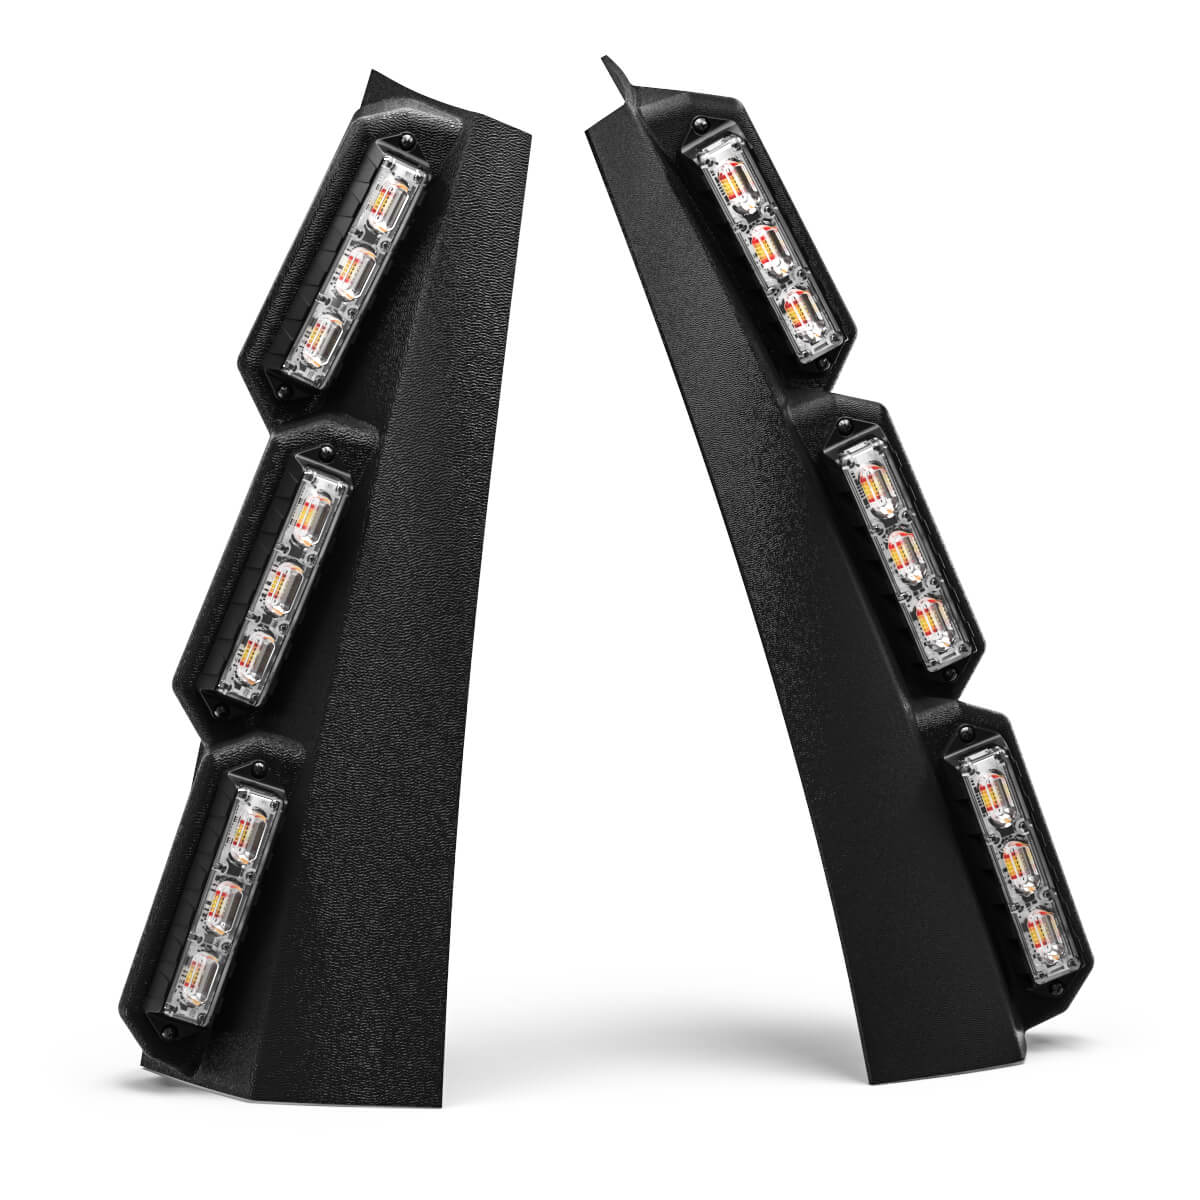 Feniex QUAD 4-Color Pillar Mount LED Lights